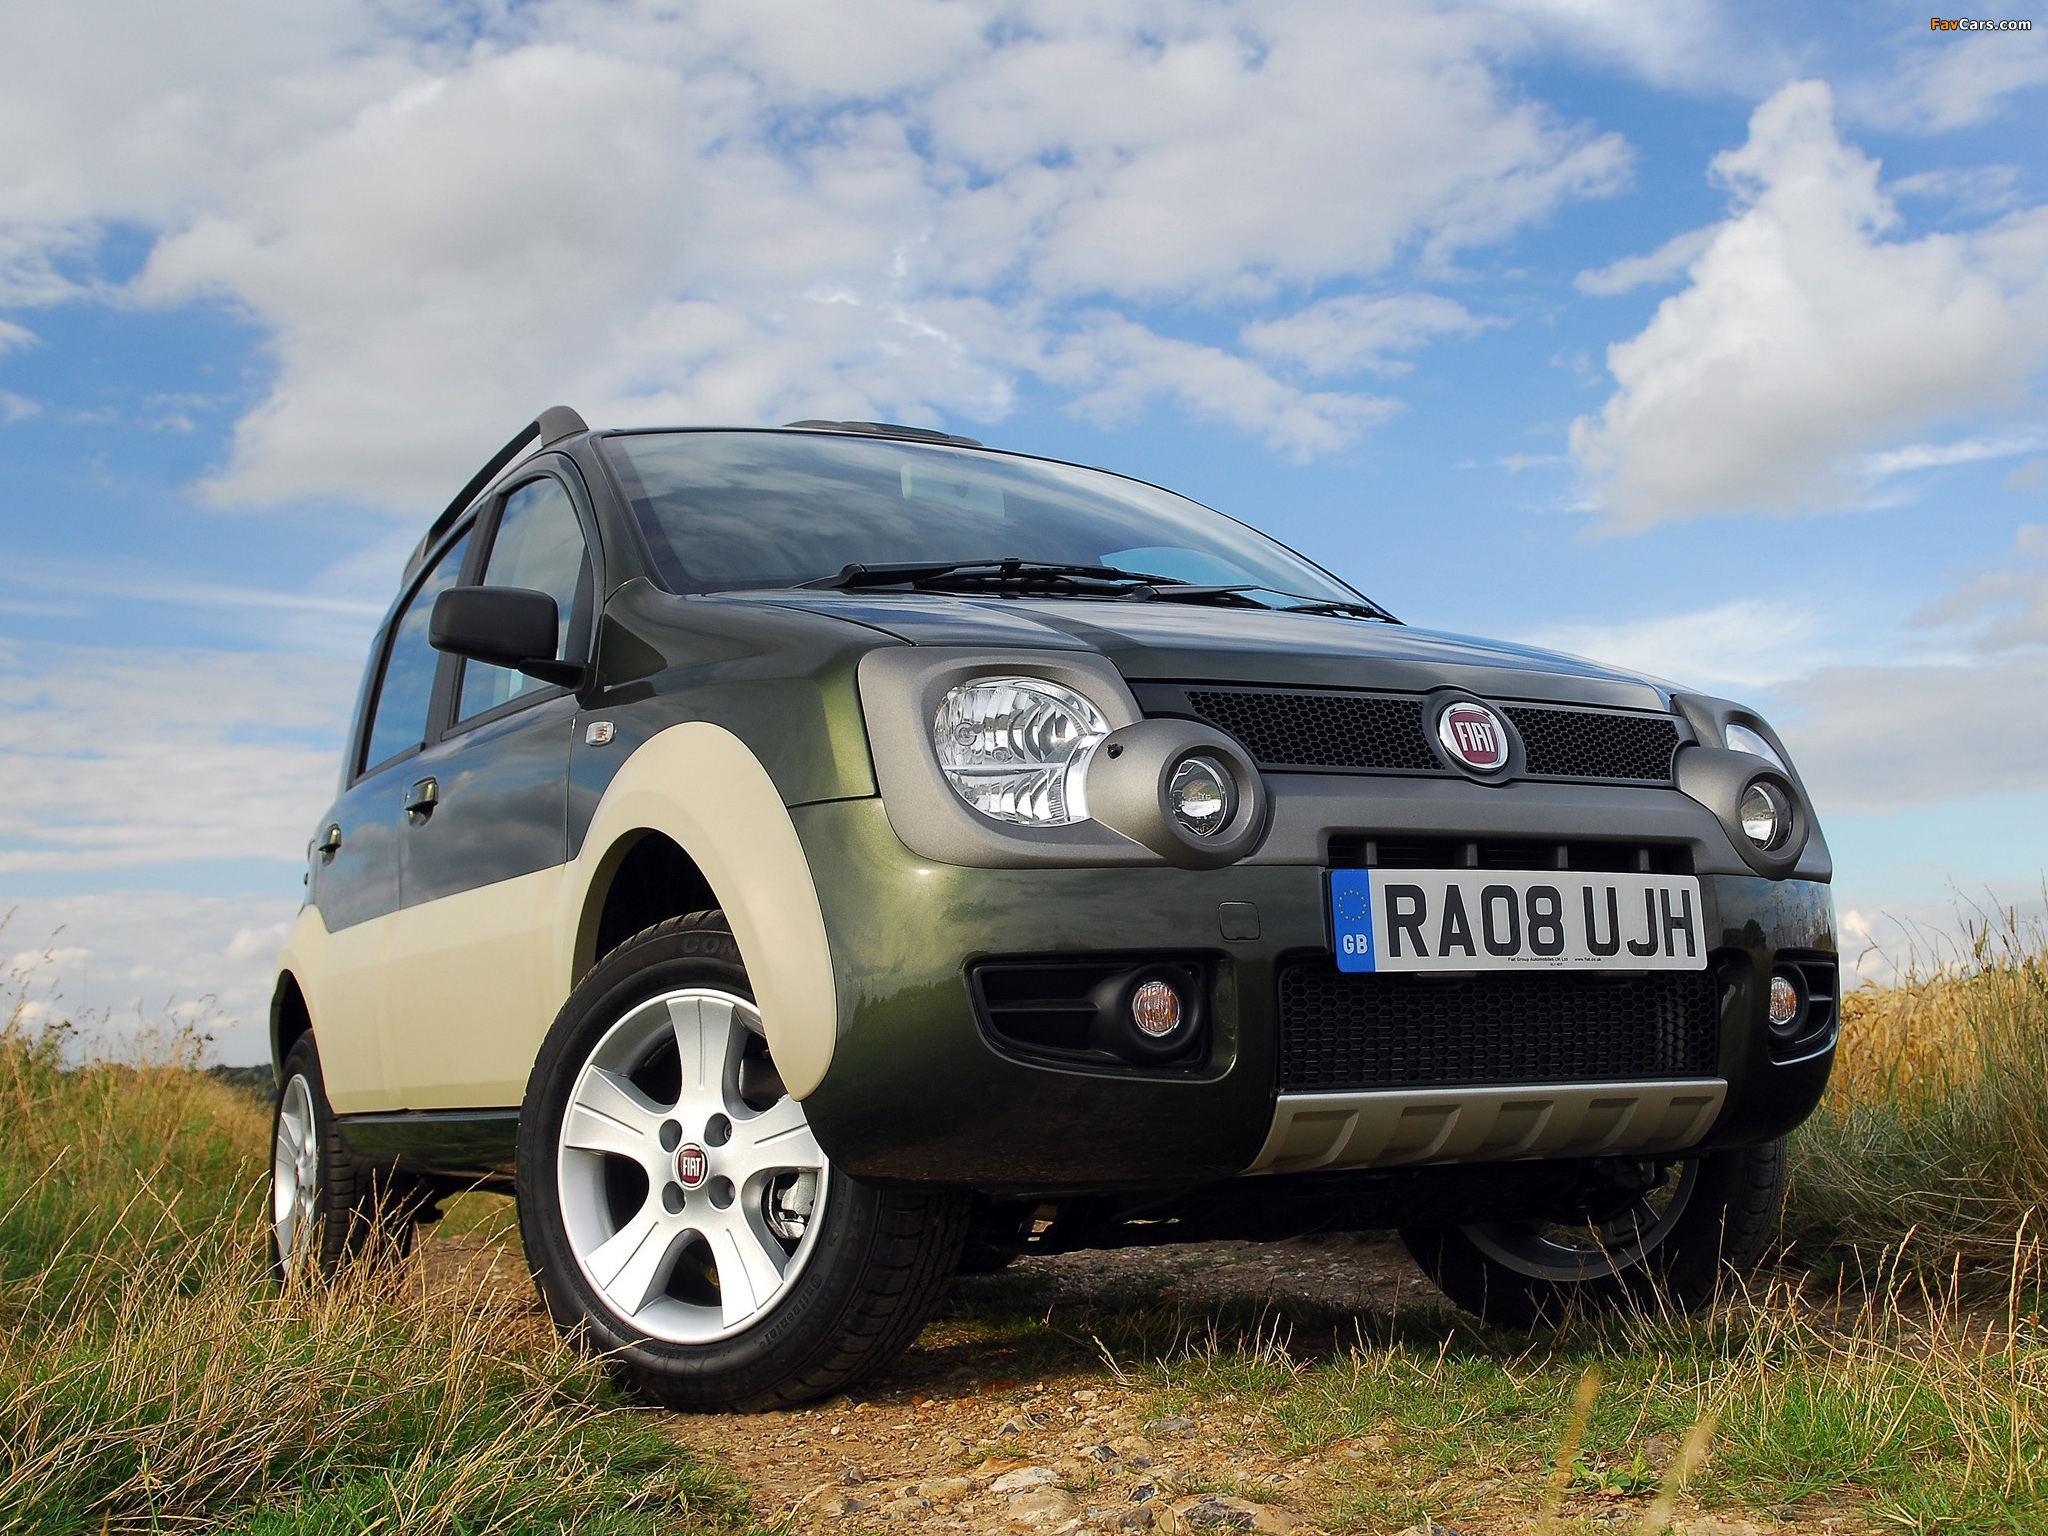 images of fiat panda 4x4 cross uk spec 169 2008 10 2048x1536. Black Bedroom Furniture Sets. Home Design Ideas